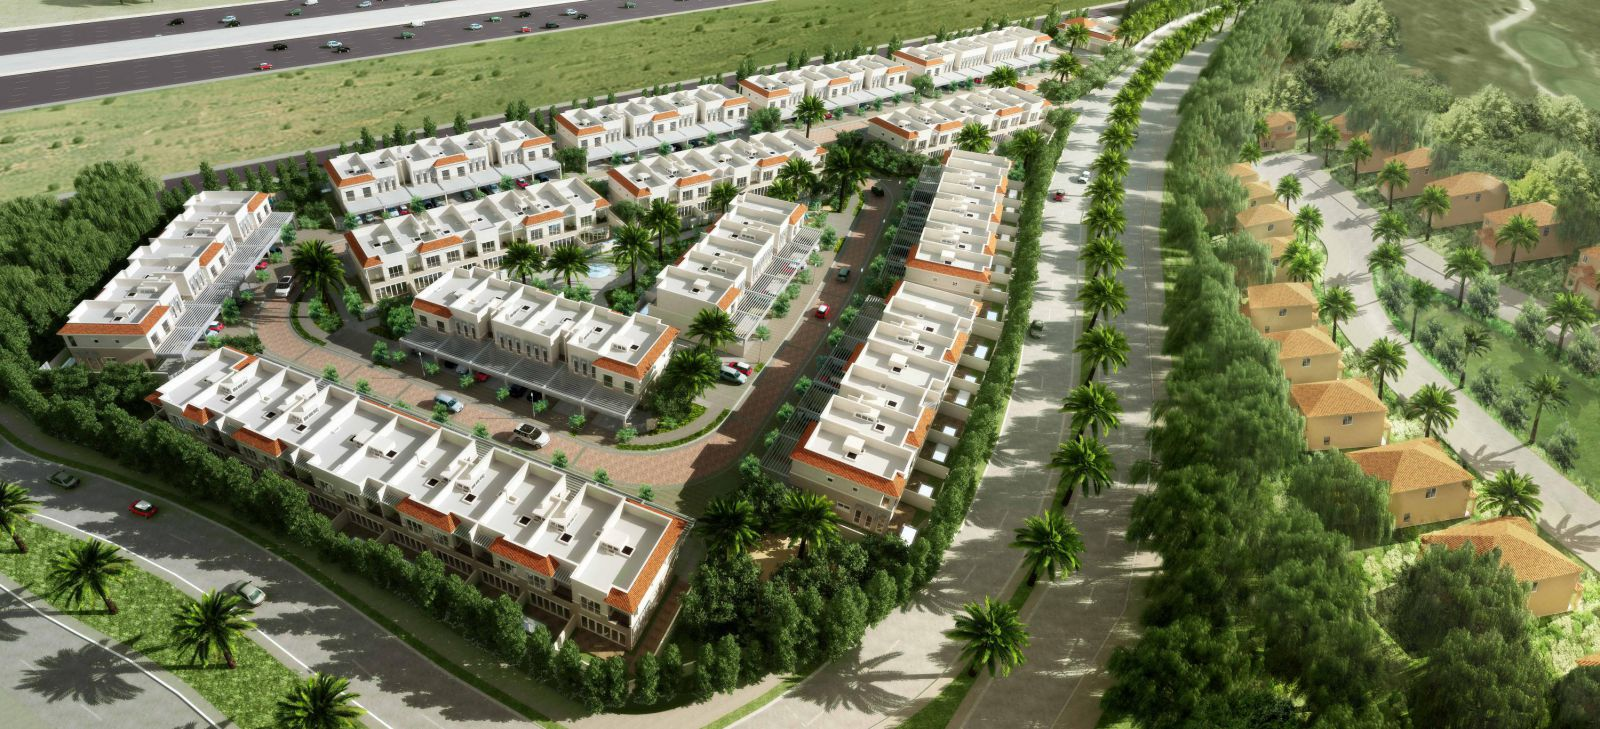 Jumeirah Golf Estates Launches 95 Townhouses In Afforbdale Luxury Community Alandalus